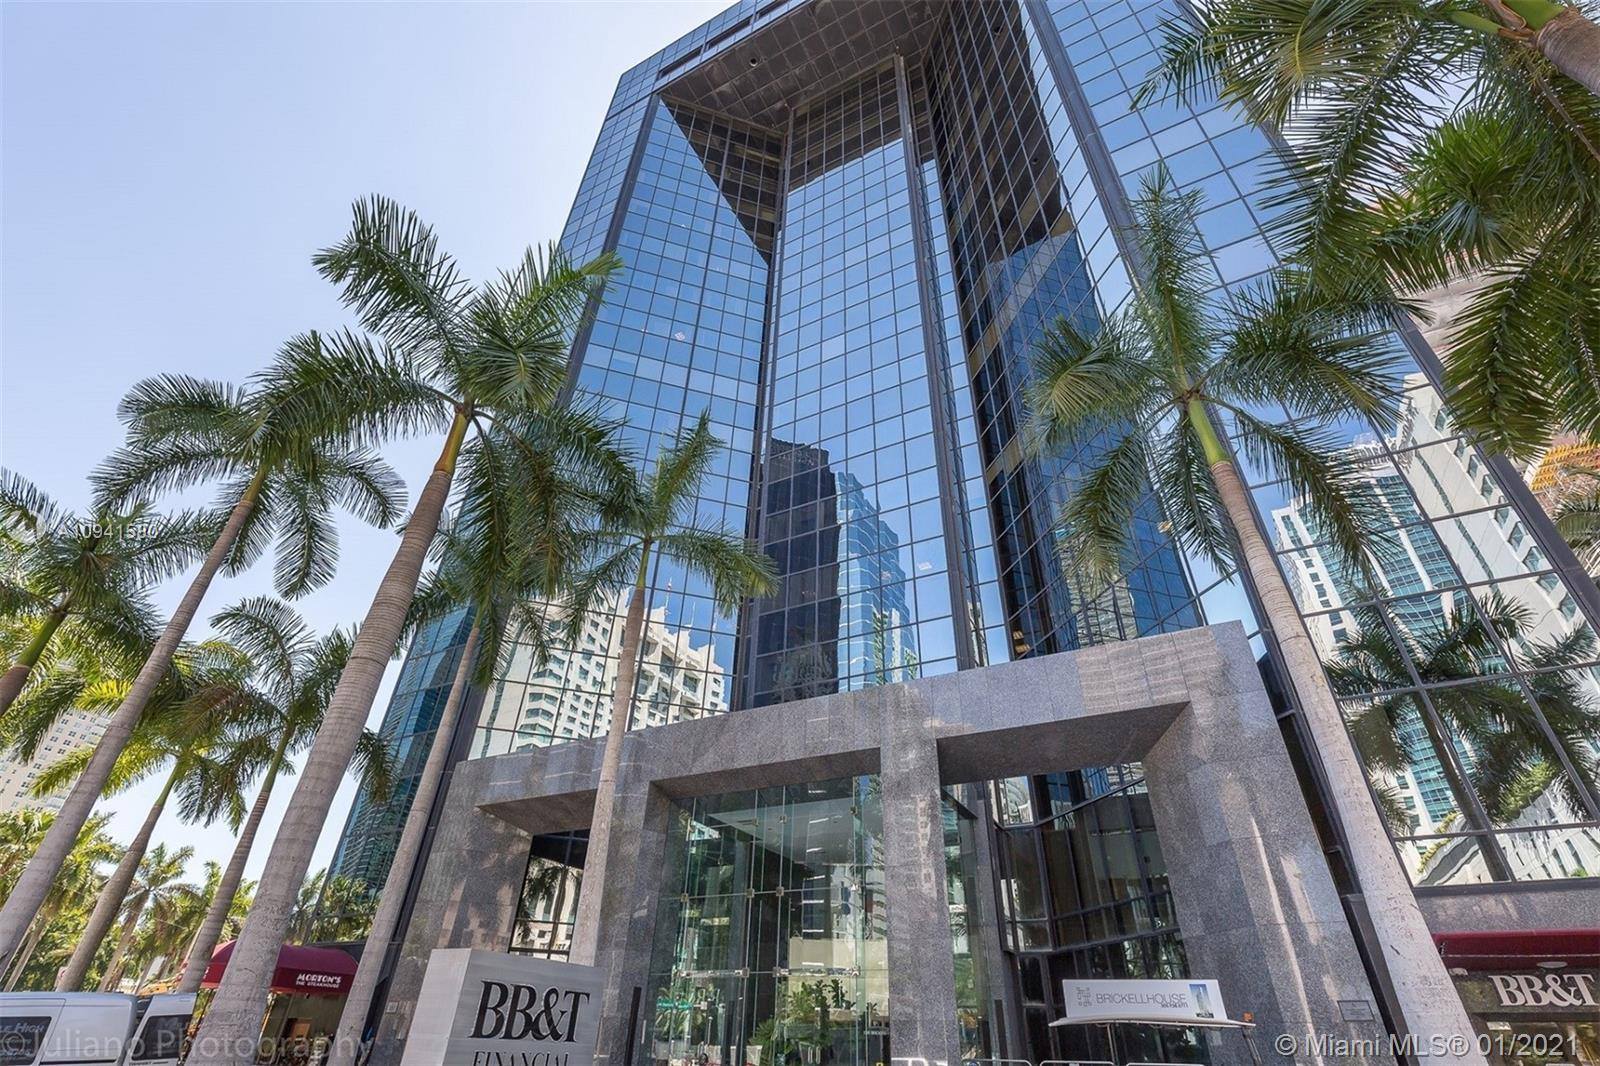 Club at Brickell #230 - 1200 Brickell Ave #230, Miami, FL 33131